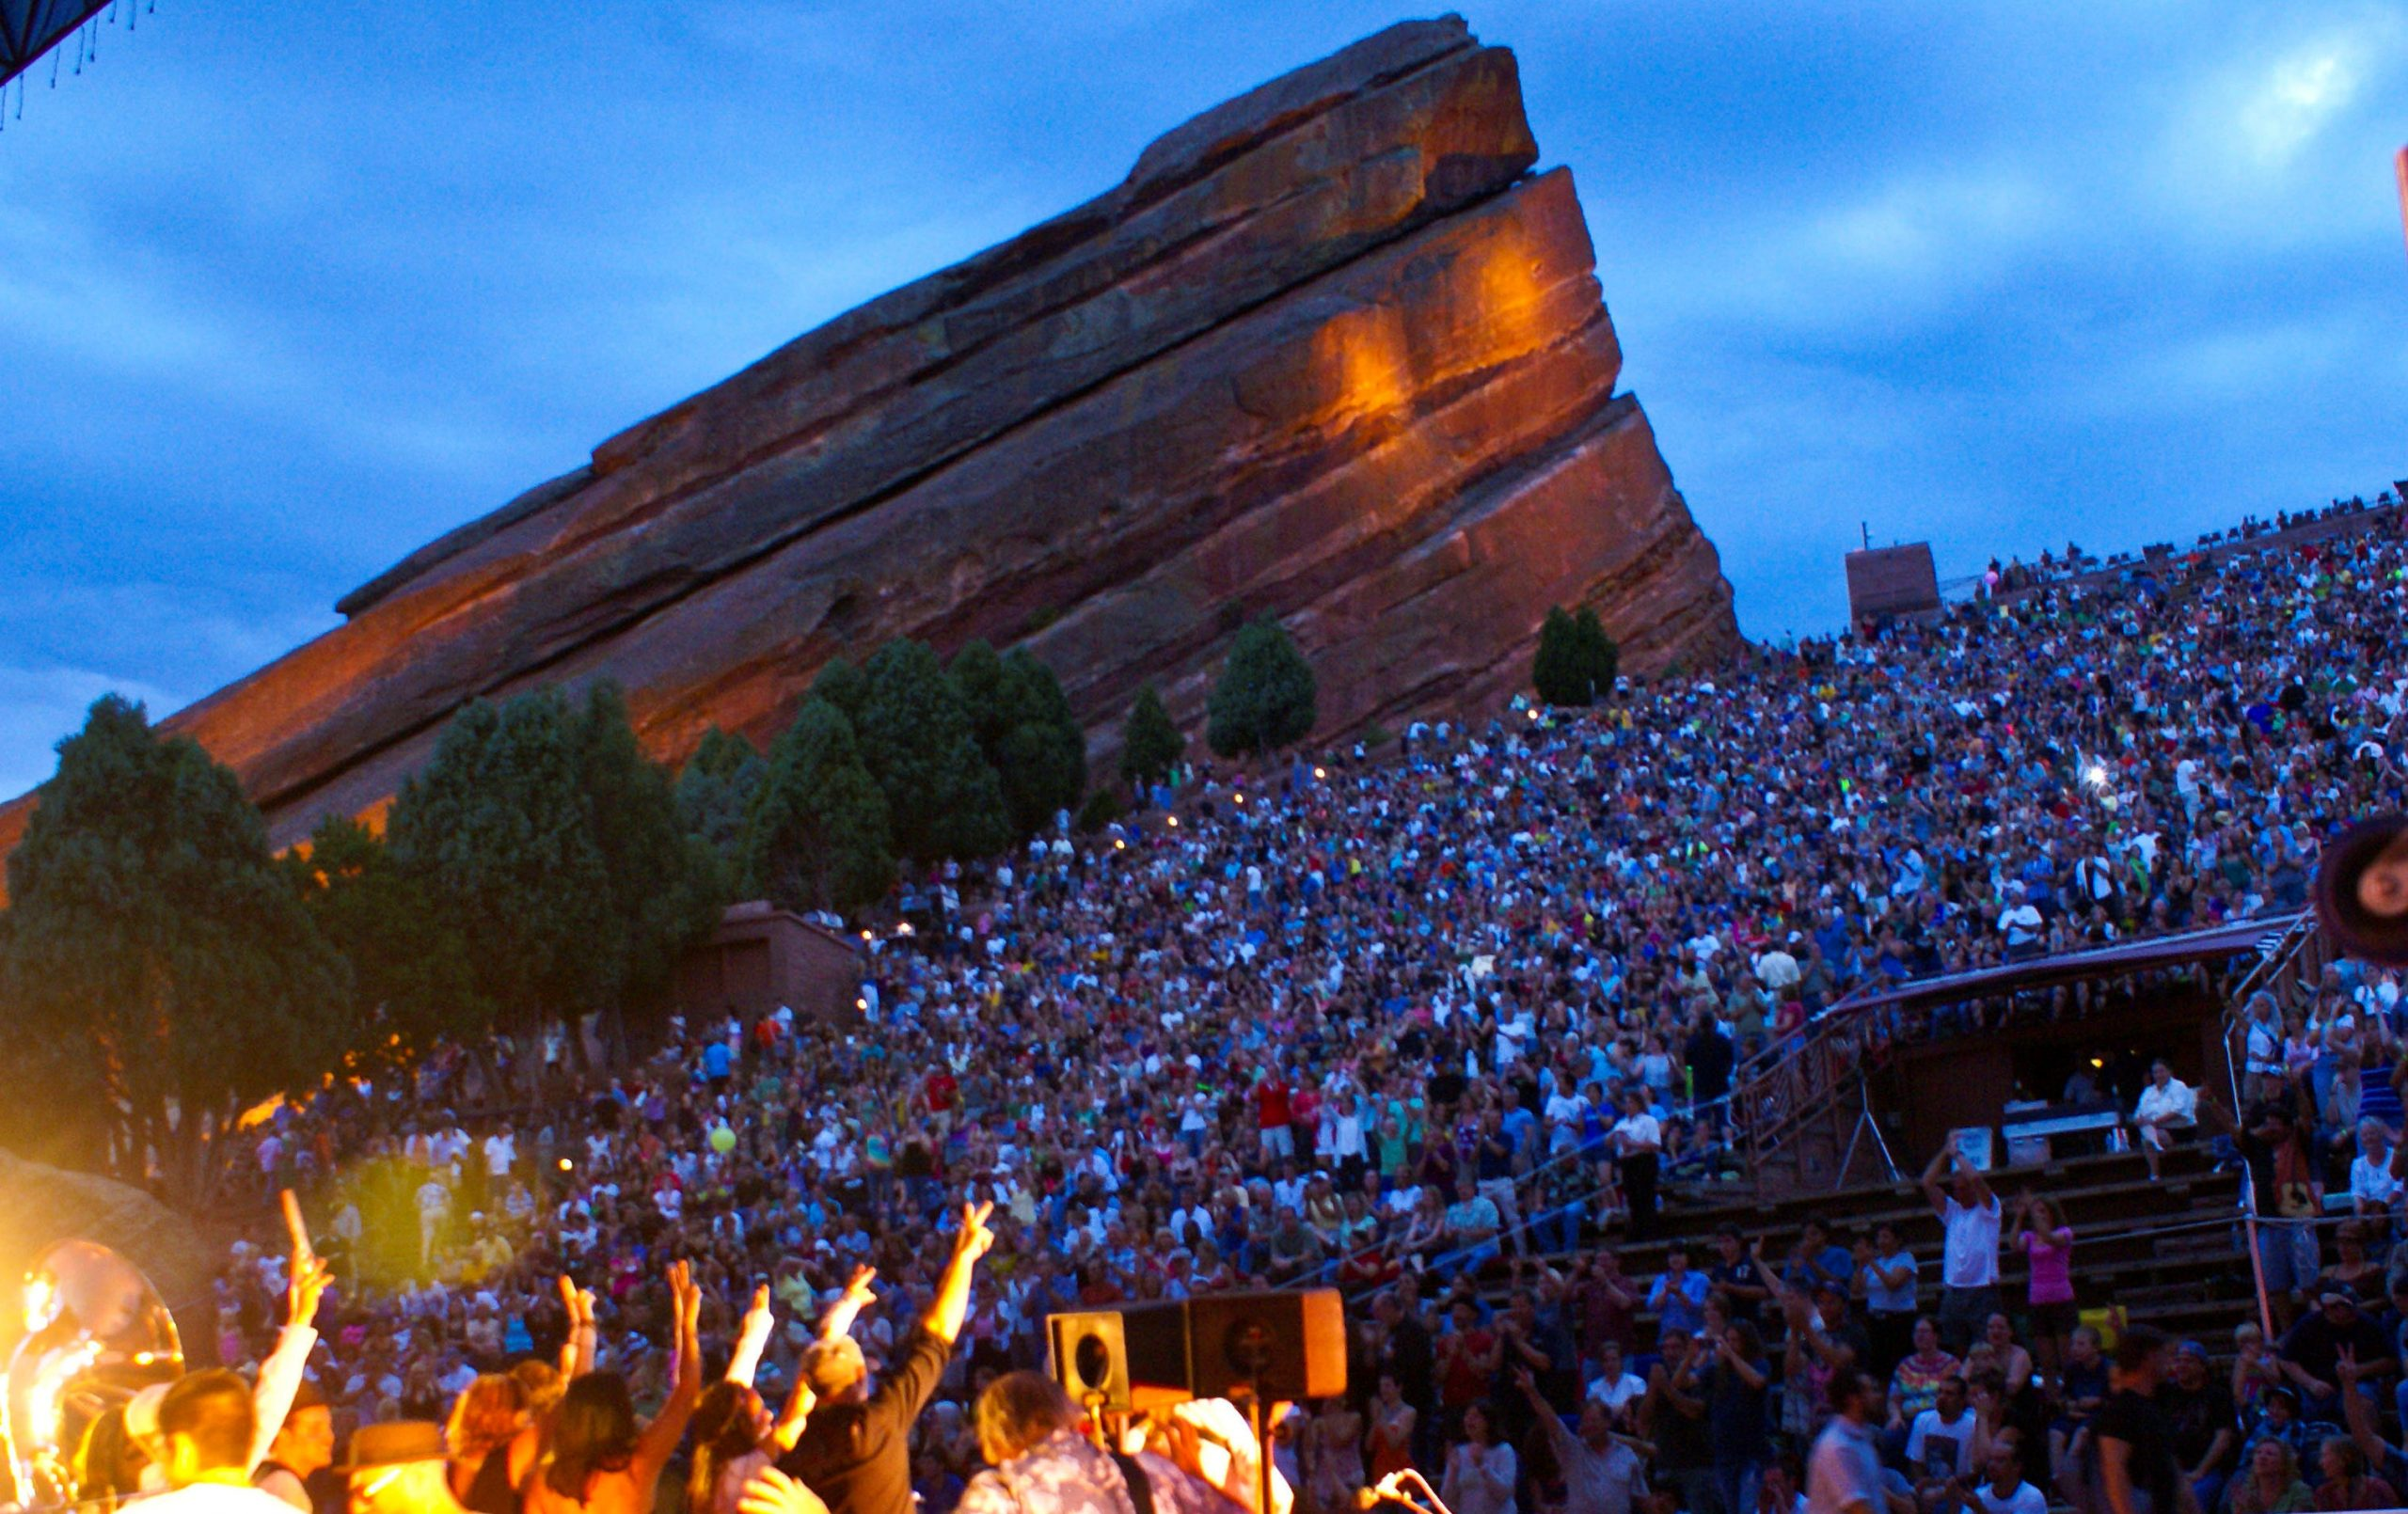 EVENTS: Nathaniel Rateliff Announces String of Socially Distanced Red Rocks Shows Before 2020 Closure